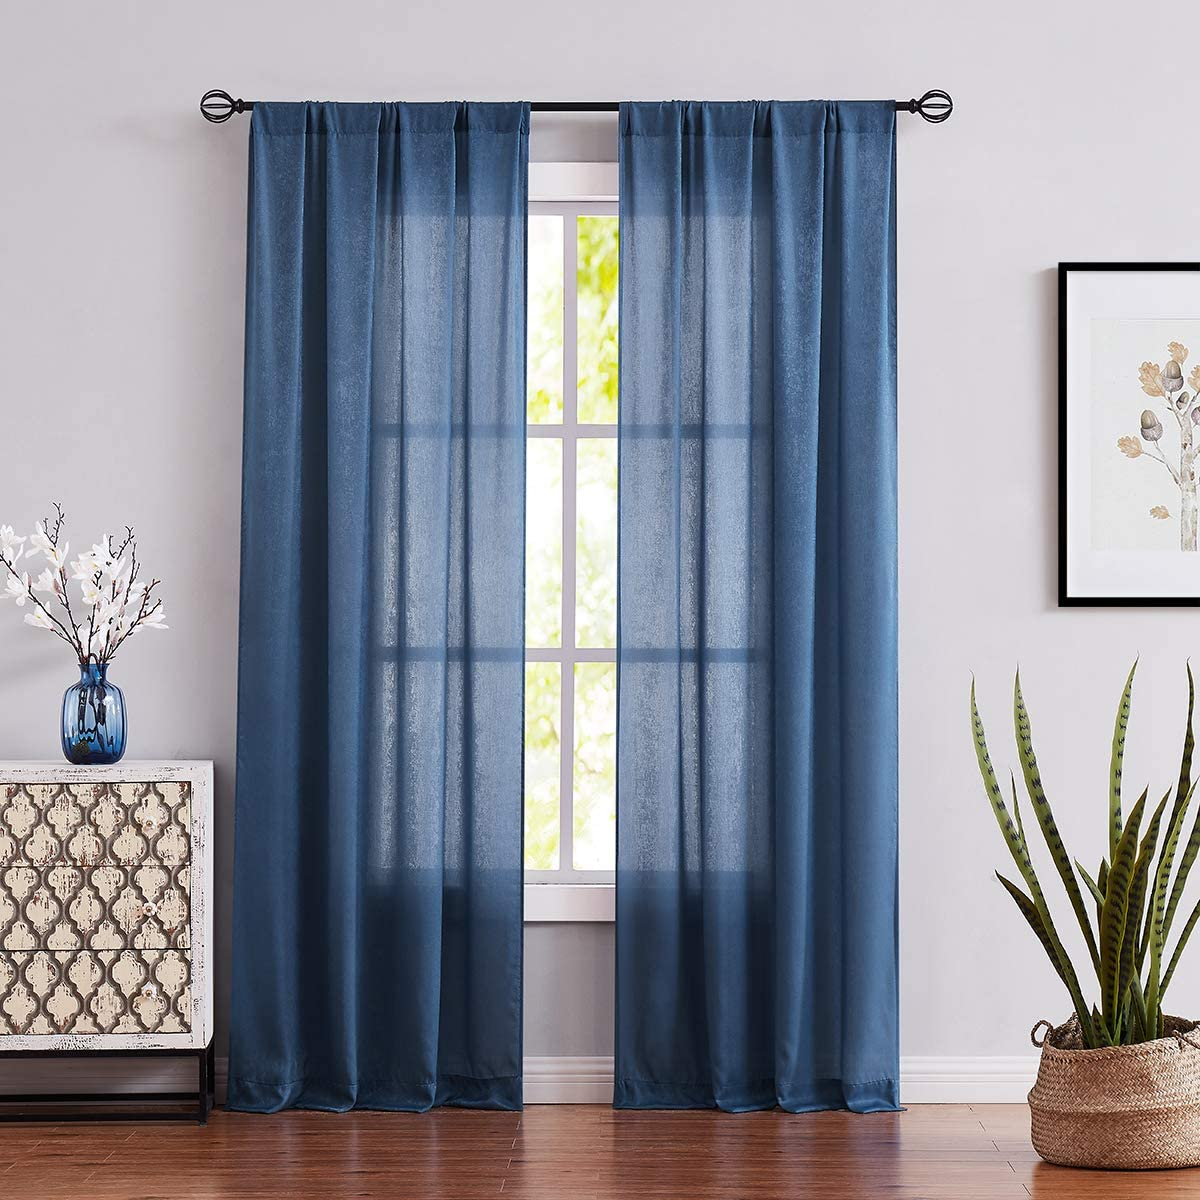 Fmfunctex Blue Semi-Sheer Curtains for Bedroom 96 Long Velvet Soft Window Draperies for Living Room 2 Pc Rod Pocket